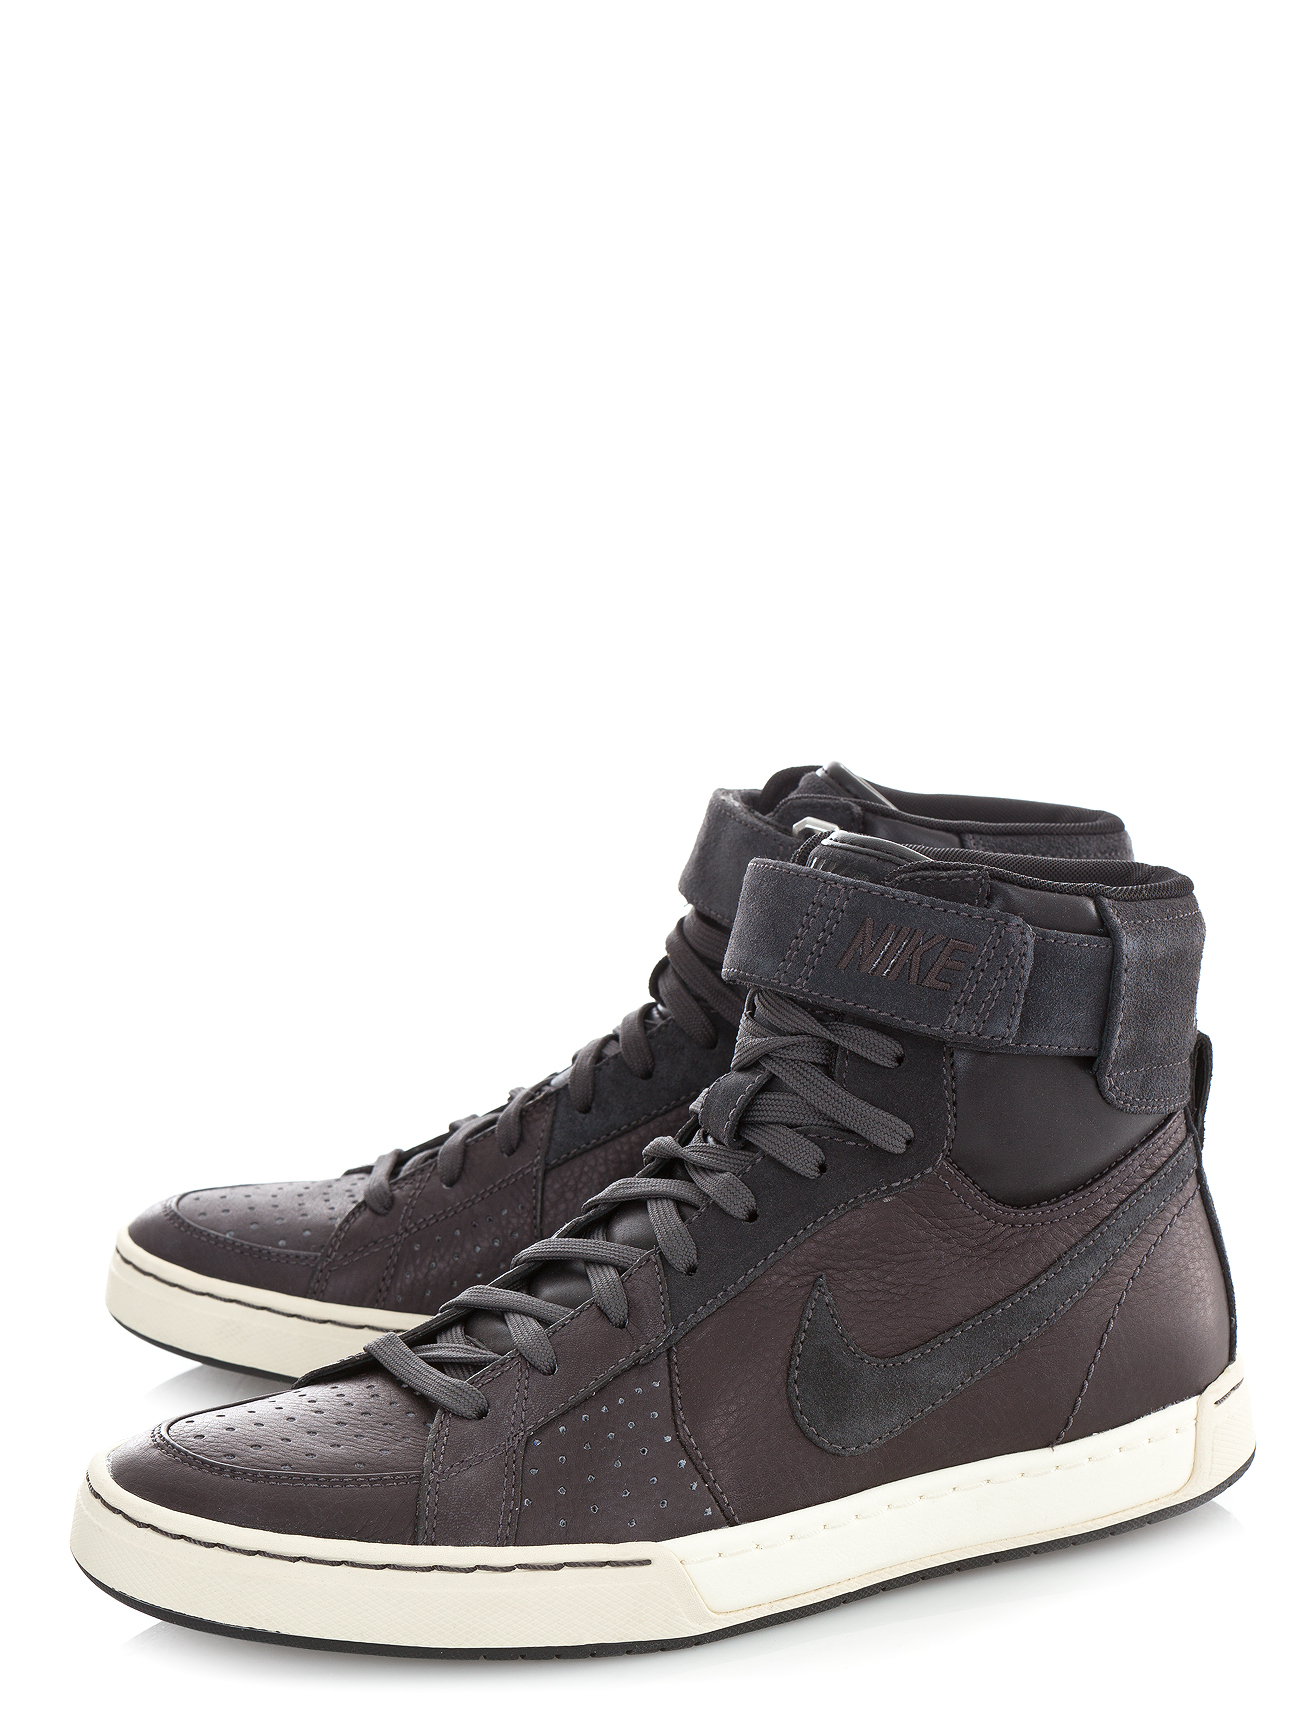 nike flytop air leather hi top sneakers in gray for men charcoal lyst. Black Bedroom Furniture Sets. Home Design Ideas